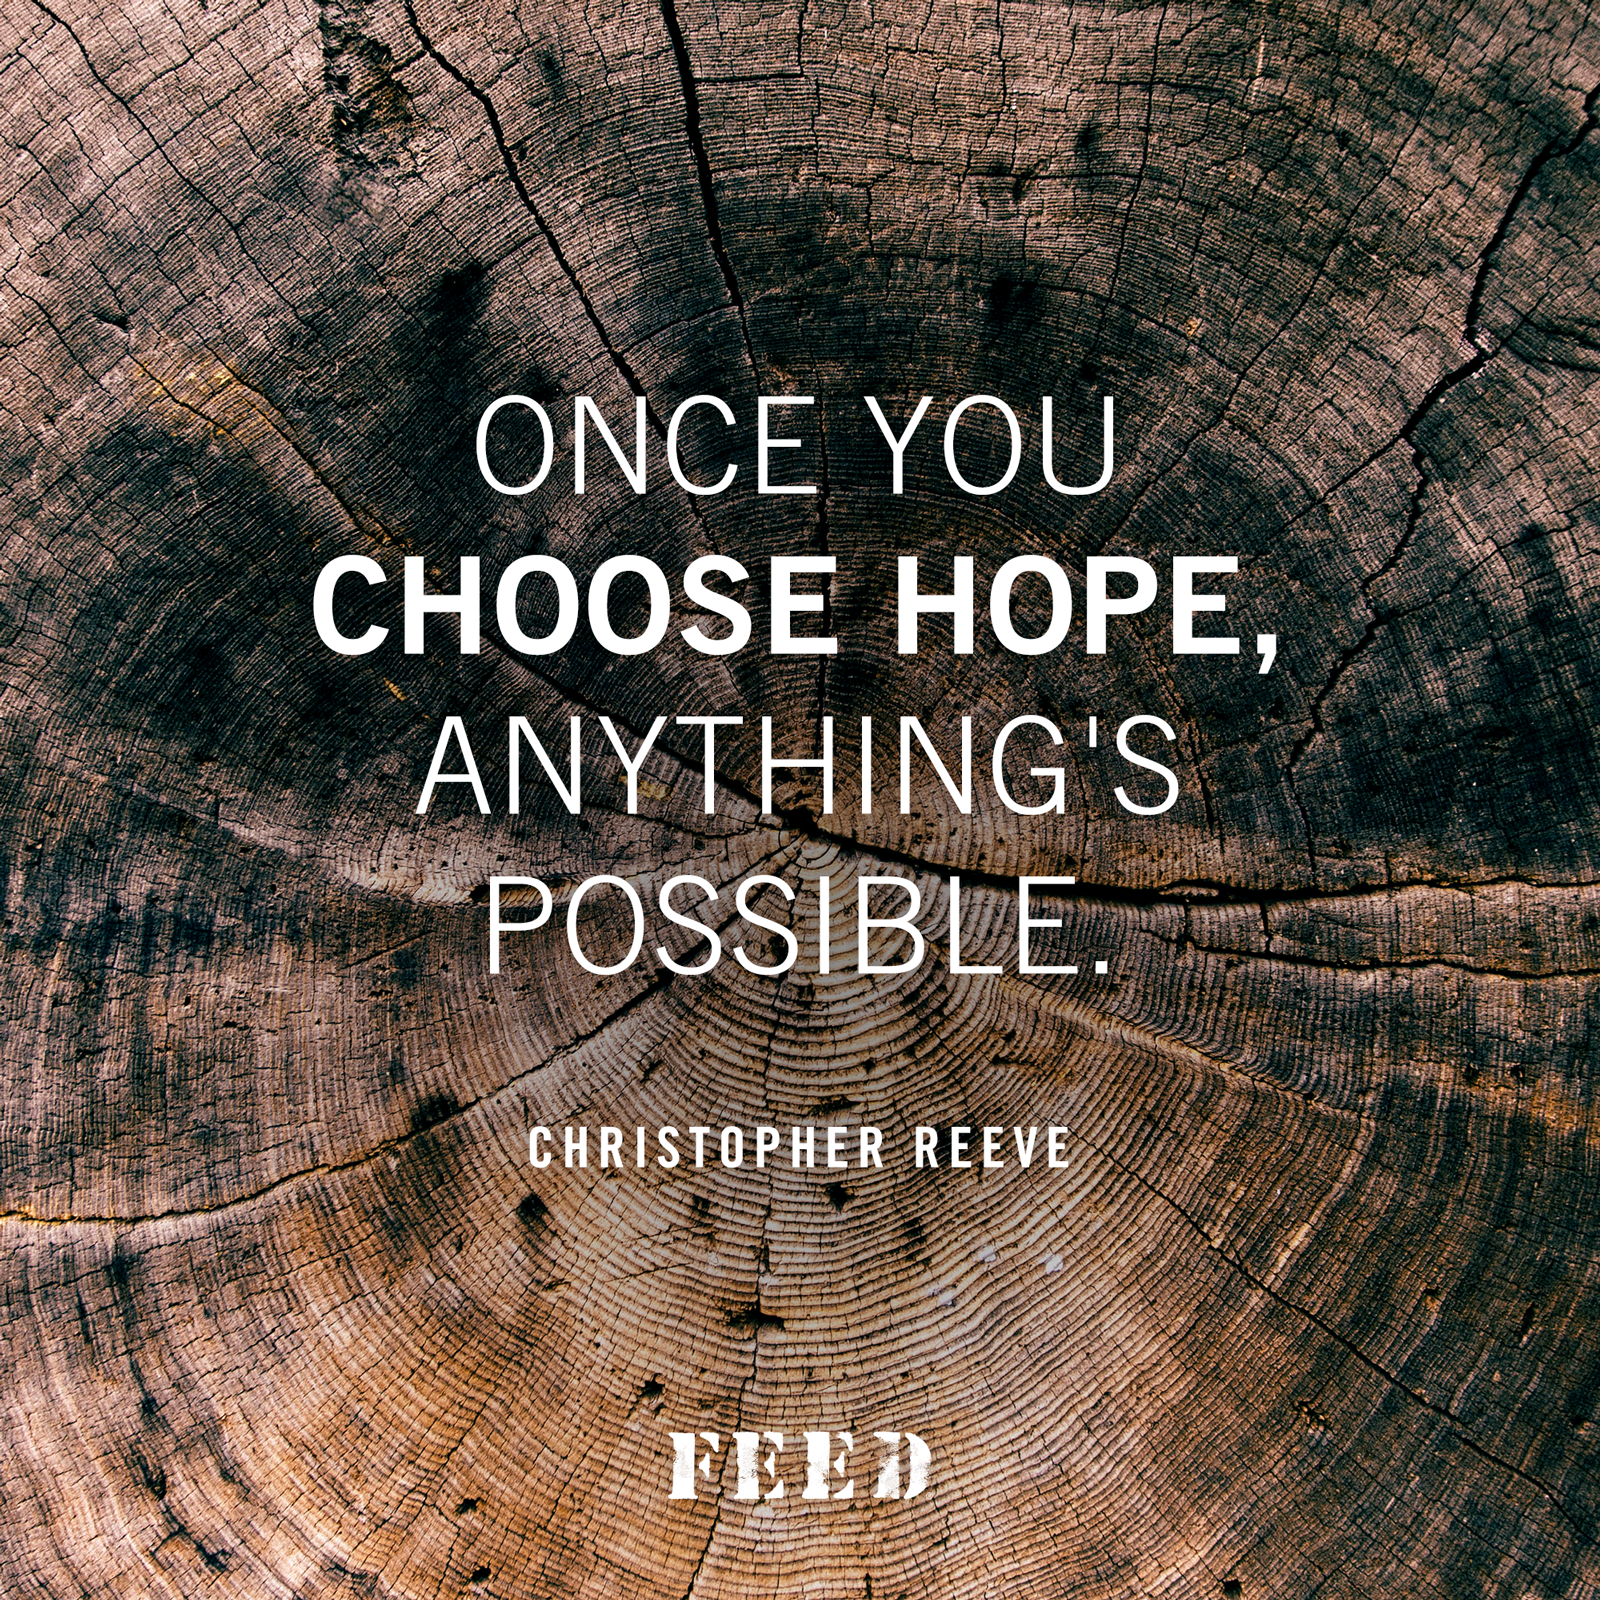 Once you choose hope, anything's possible. Christopher